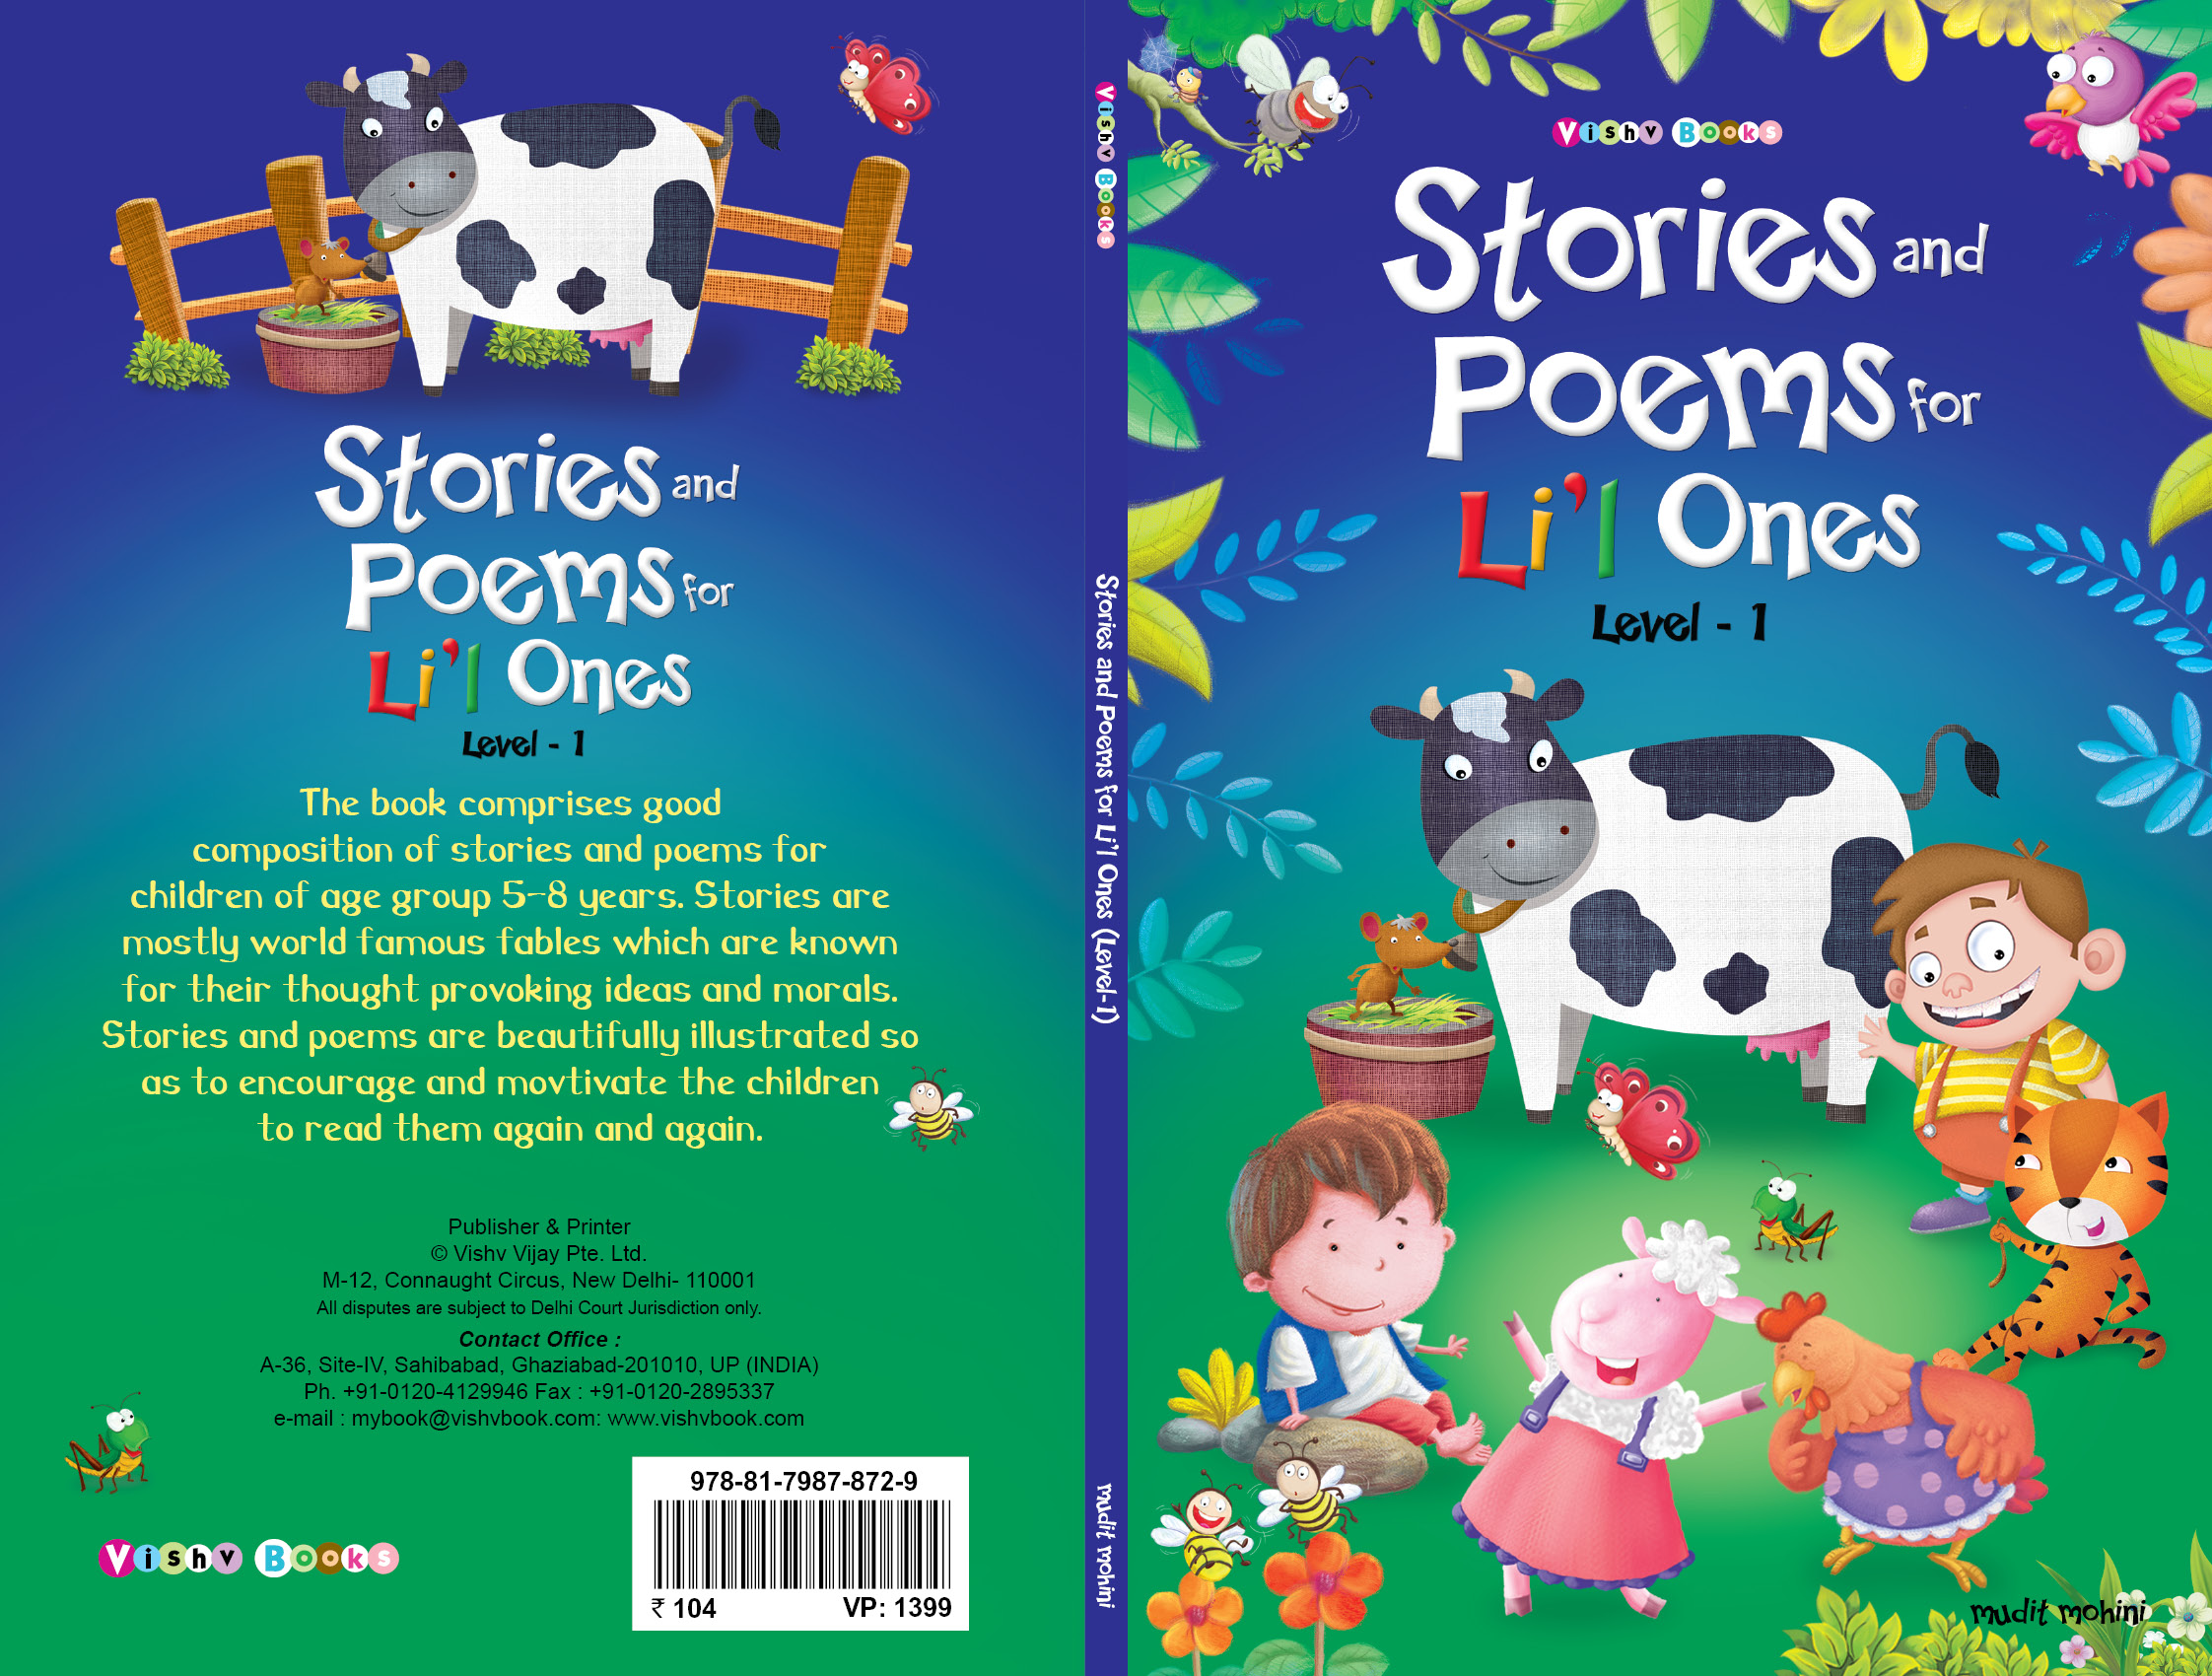 Children S Book Back Cover : Children book cover by devesh sharma at coroflot